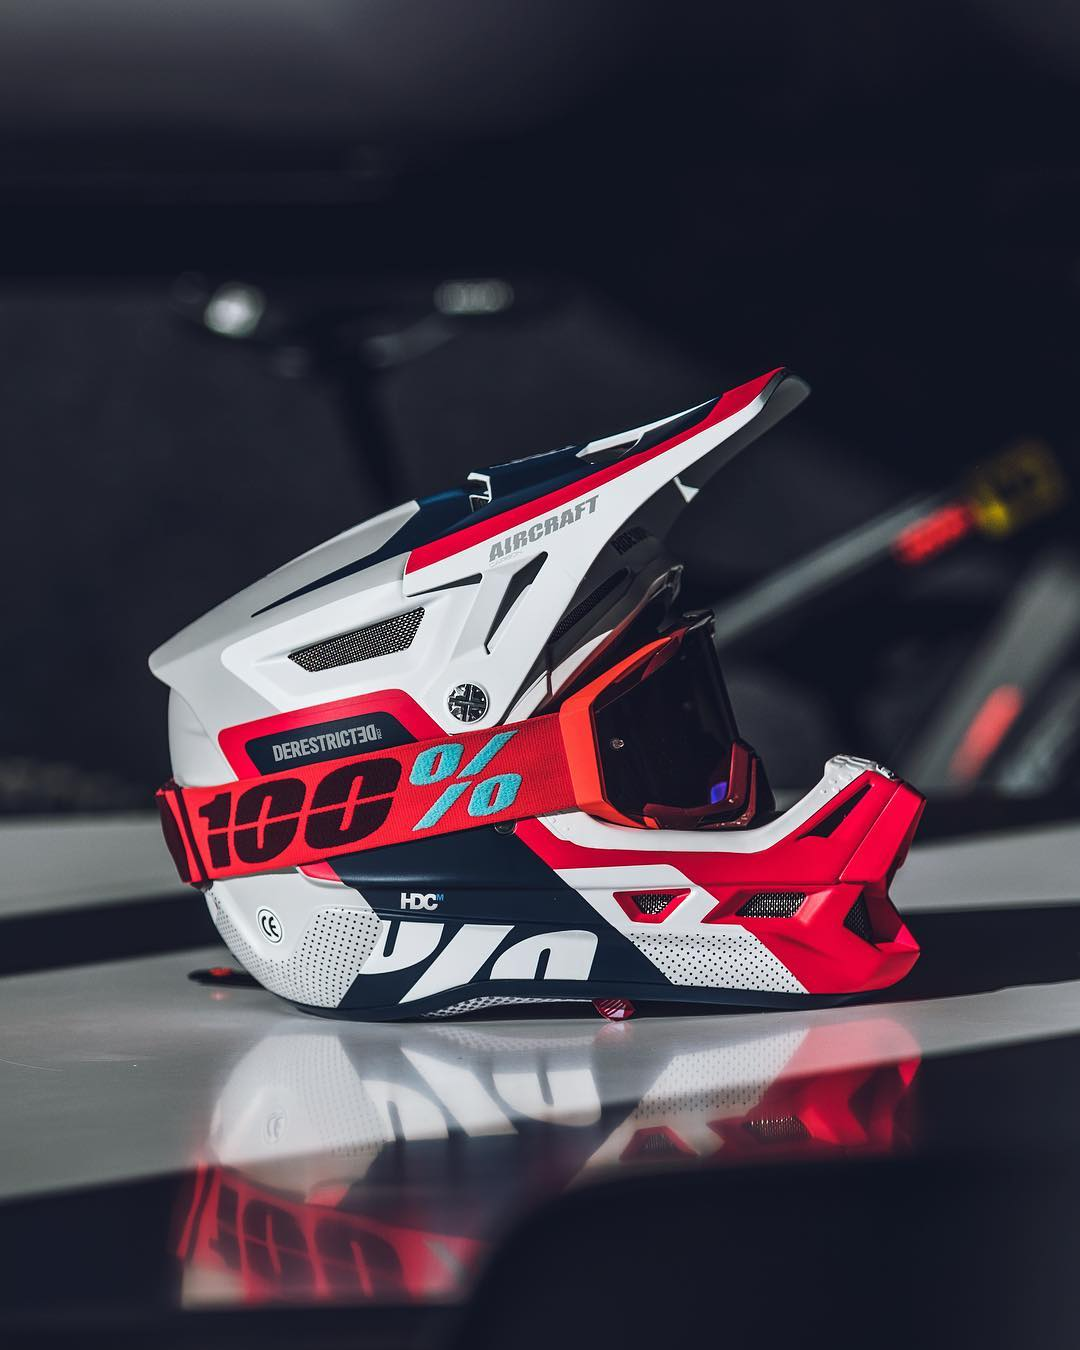 Looks fast as fook! Another sweet lid from 100% #mtb #enduro #downhill #emtb #ride100percent